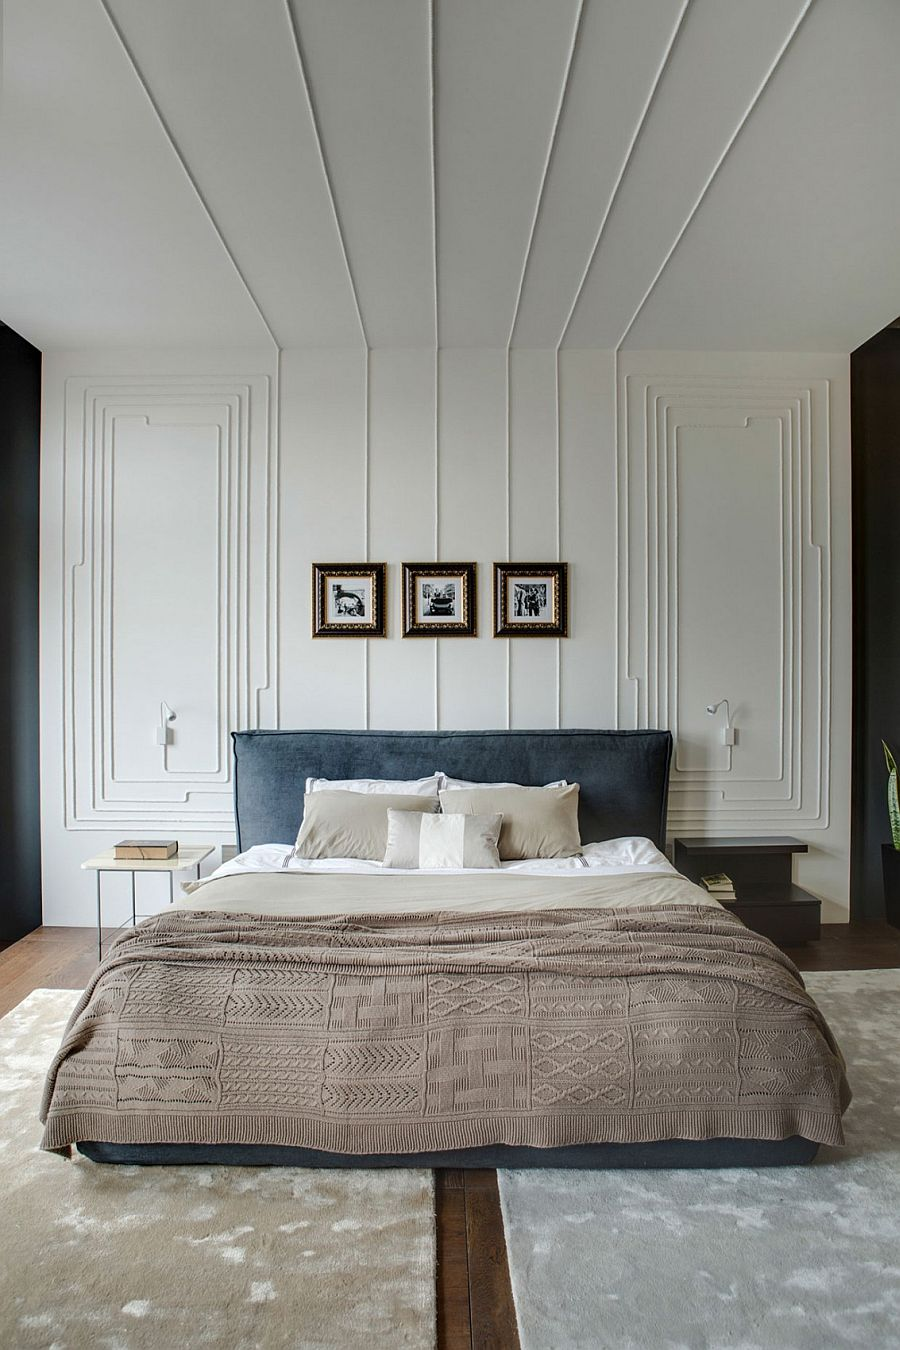 Cozy bedroom design with a minimalistic contemporary touch